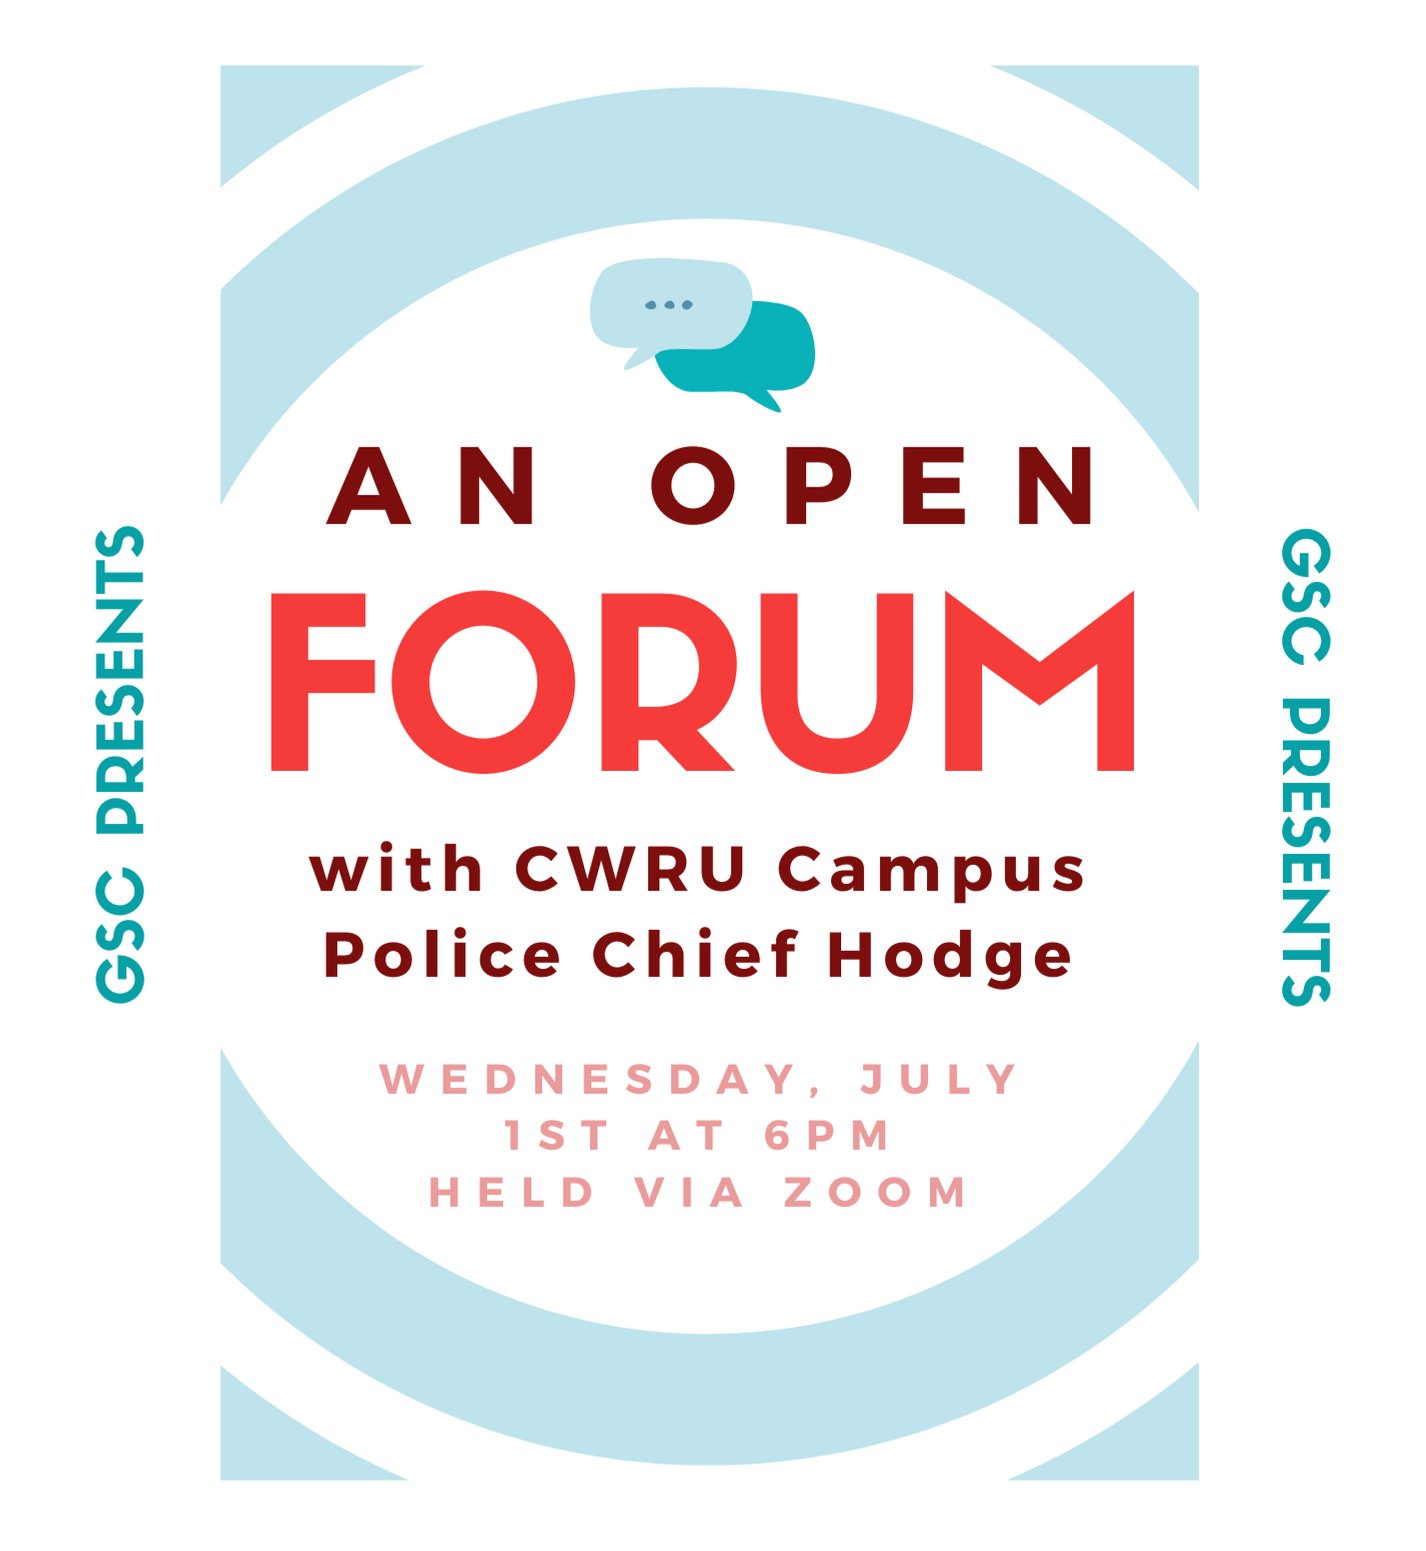 GSC's Open Forum with Police Chief Hodge